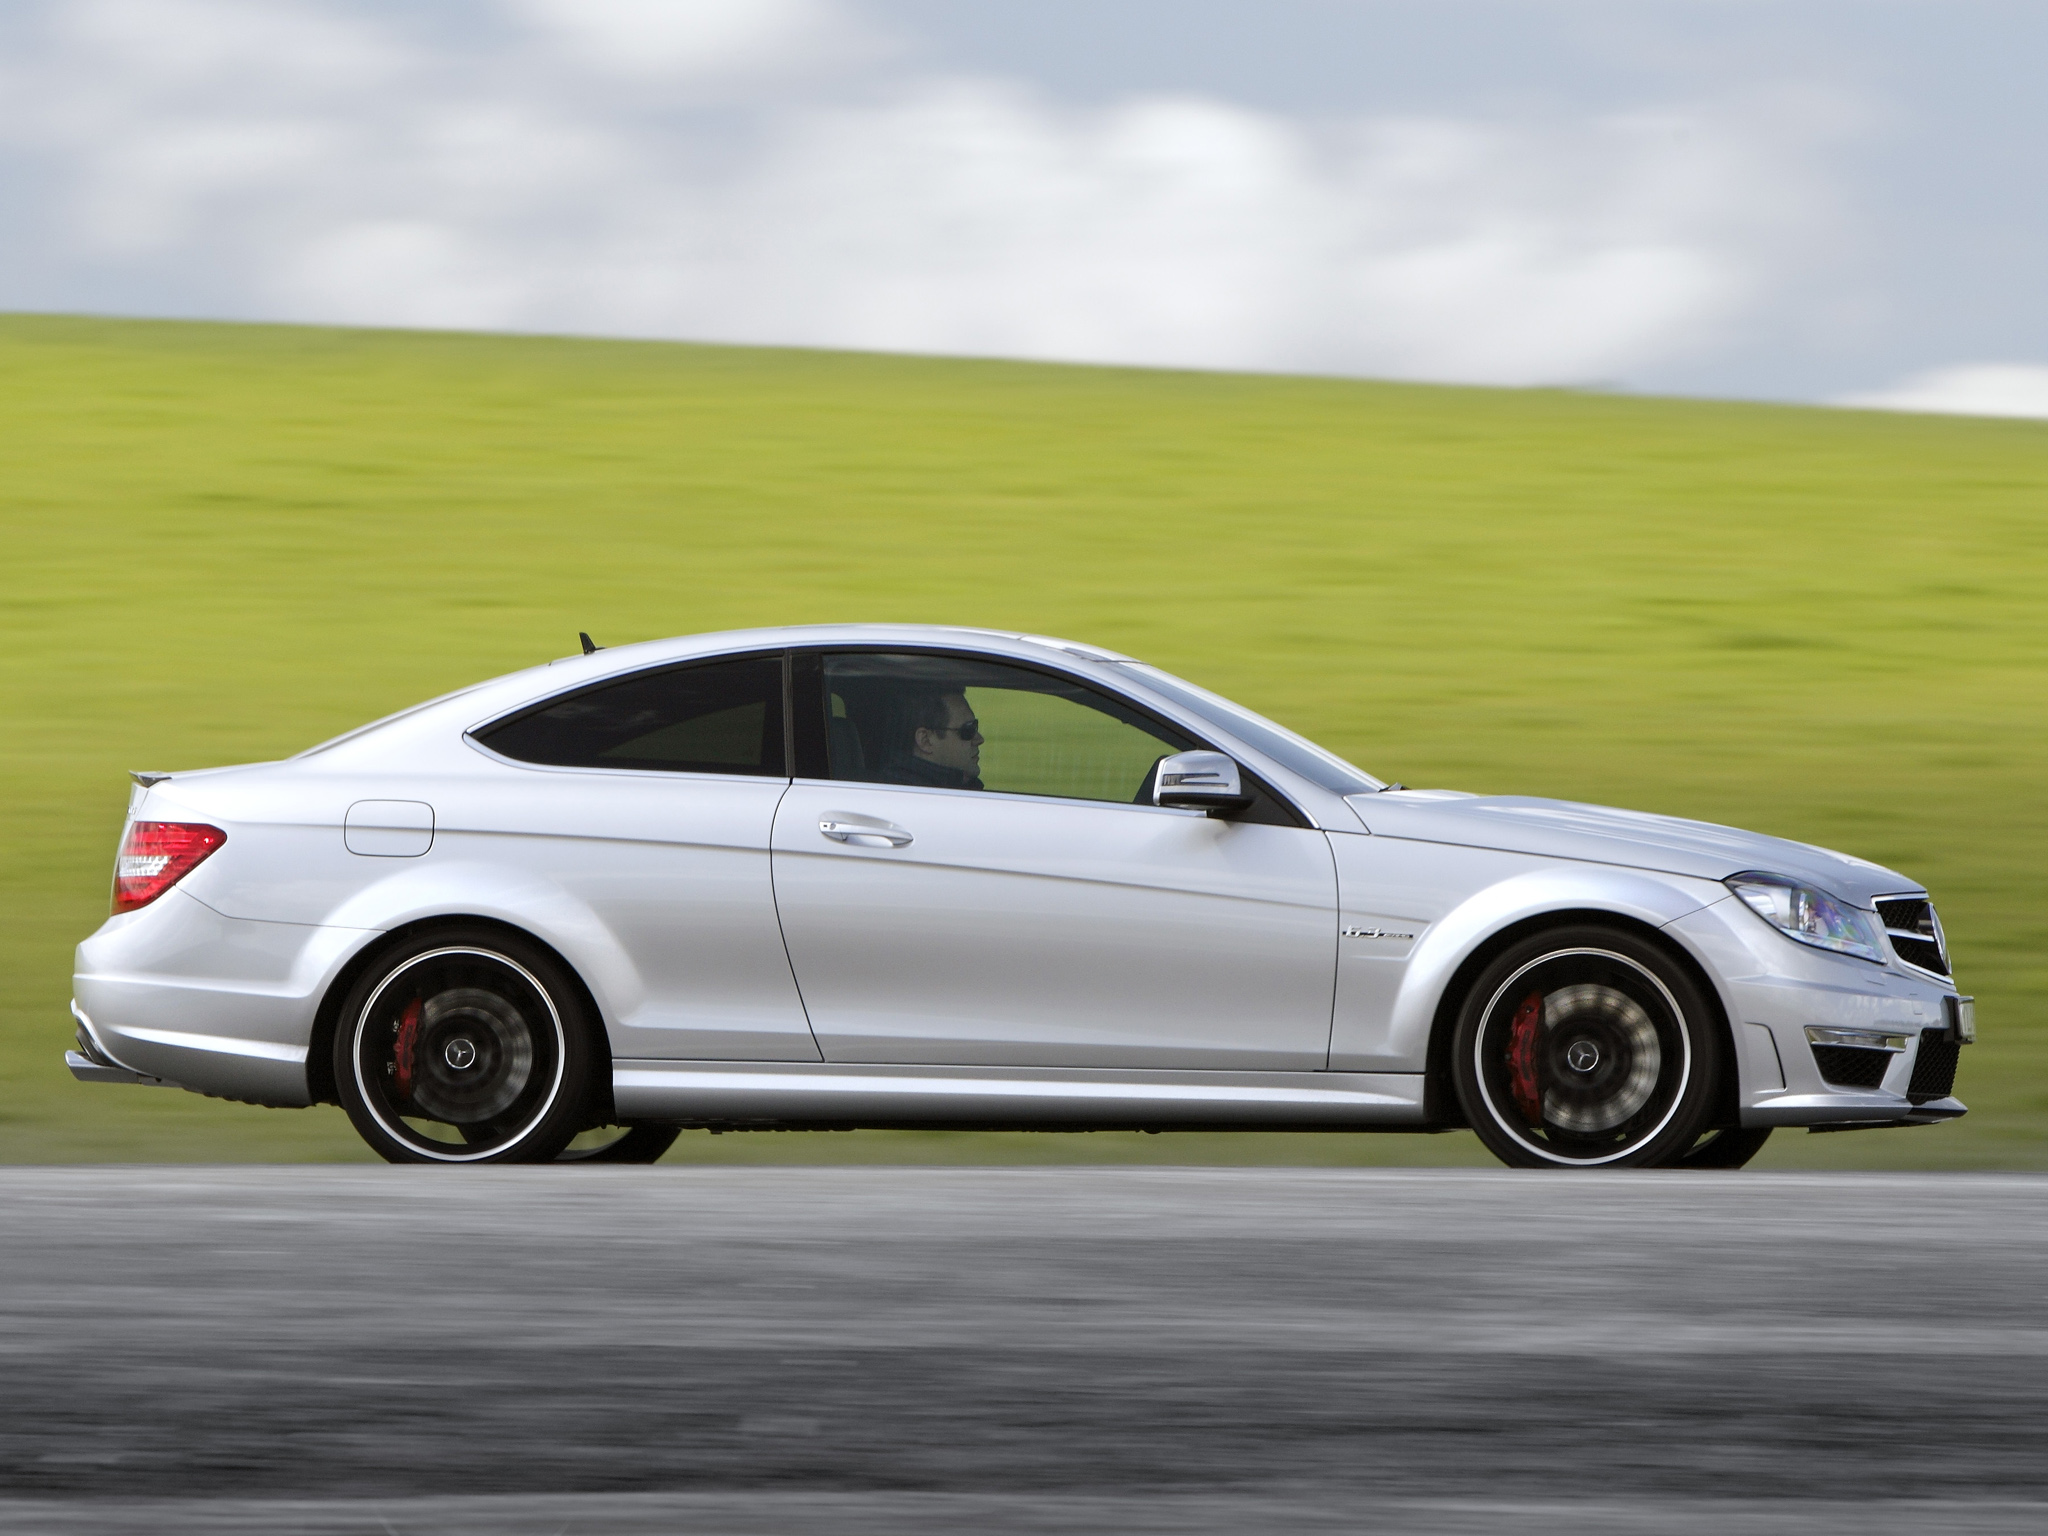 Mercedes-Benz C63 AMG Coupe photo 96456